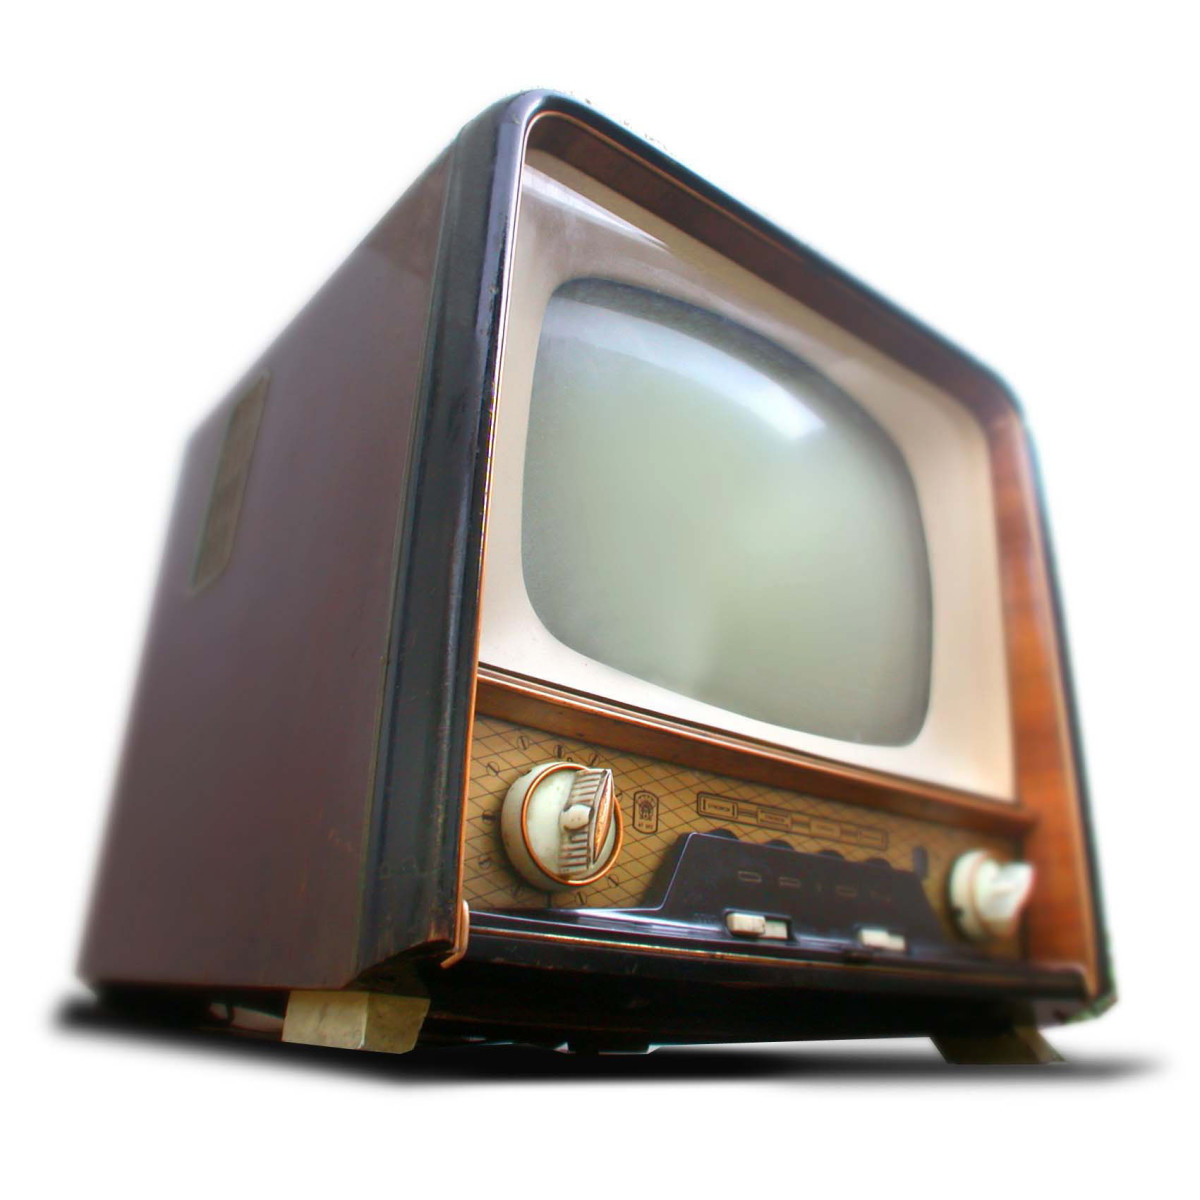 This is an early TV, before they got flat and big and really cheap.  This old model would cost around $100,000 in today's dollars (well, a lot more than you'd think, anyway).